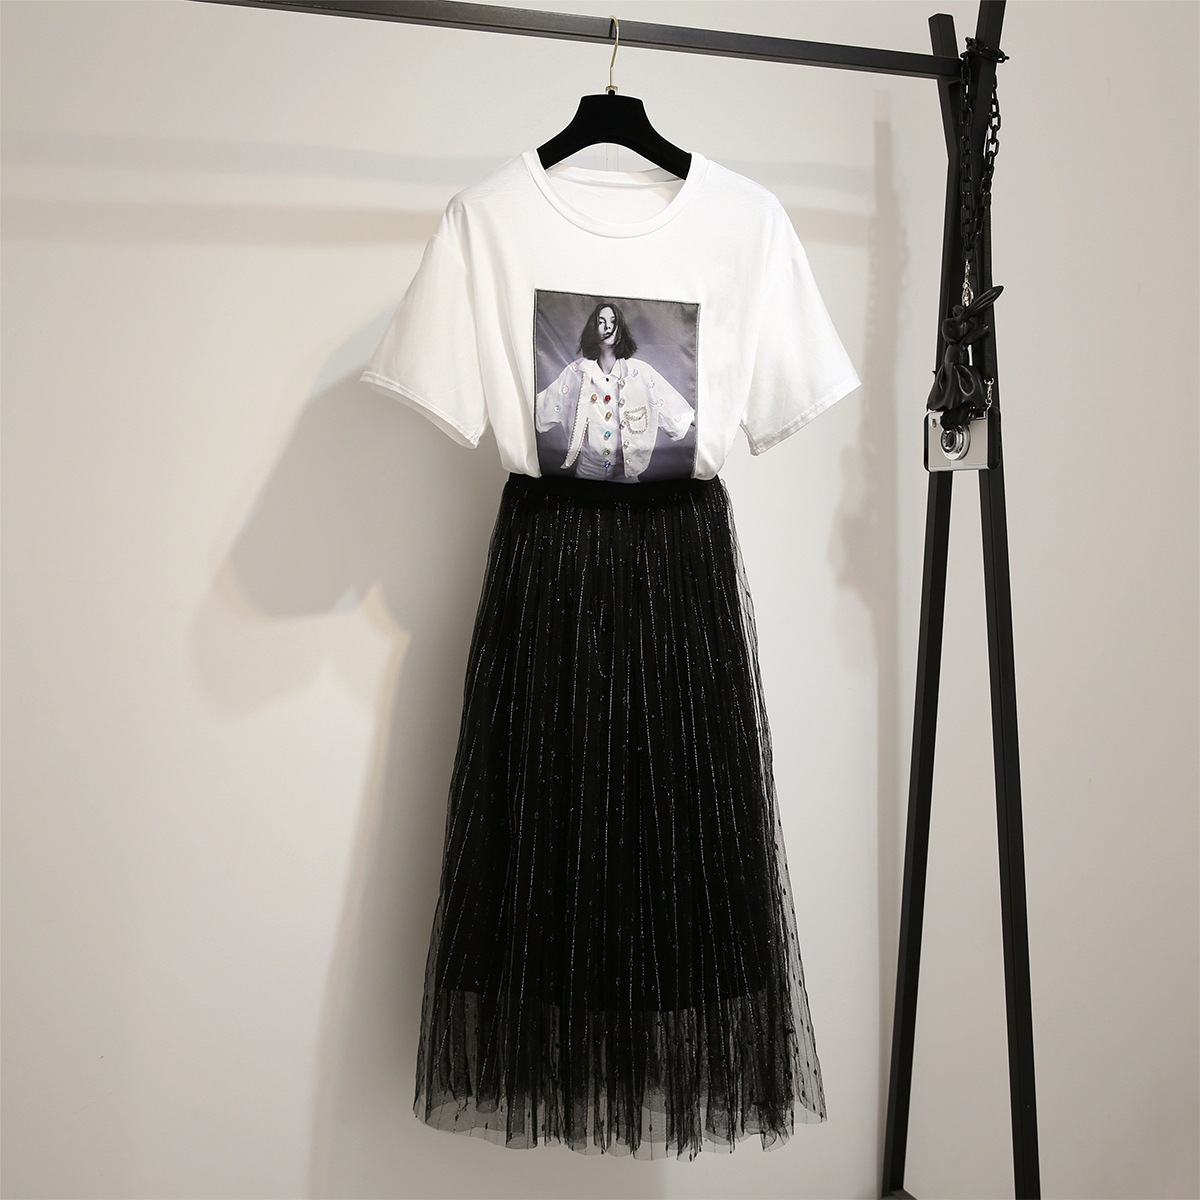 Embroidered Diamond Set Sequin Beads Short Sleeve T-shirt + High-waisted Industrial Liangsi Gold Beads Fairy Skirt Gauze Skirt